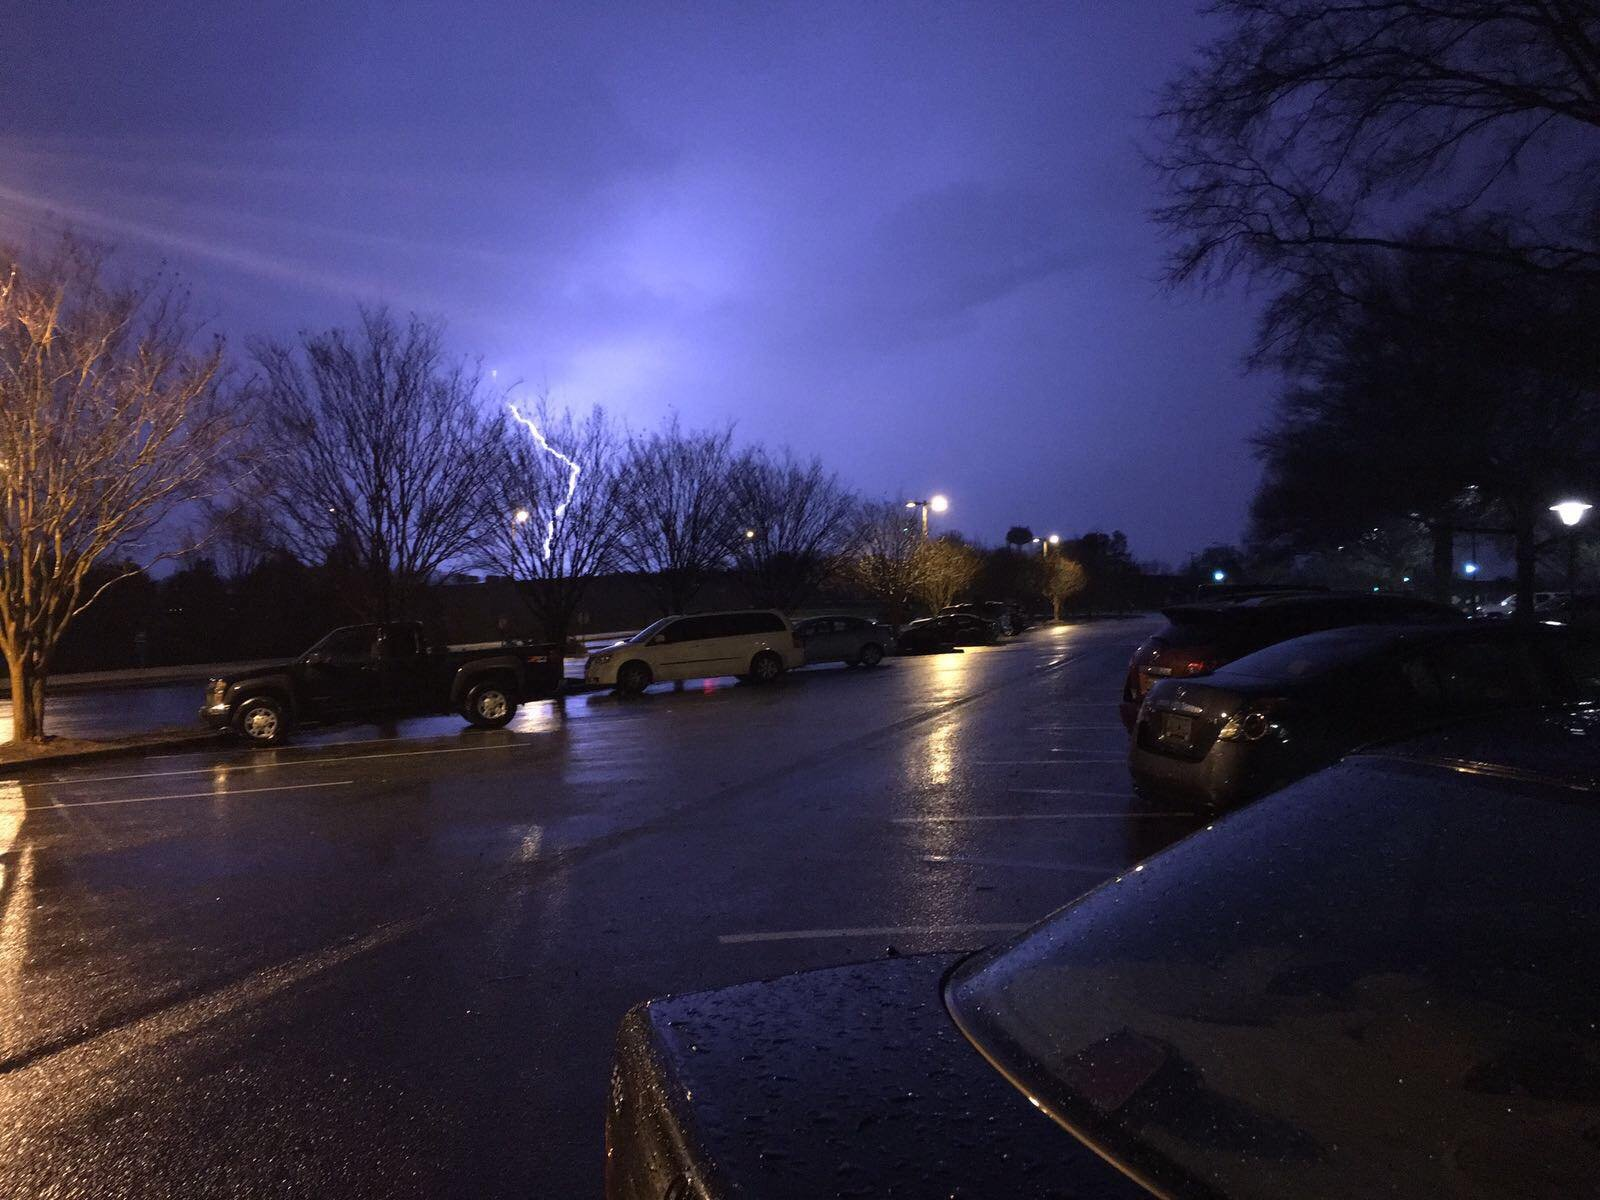 Storms in Duncan, SC. (Source: Witness)